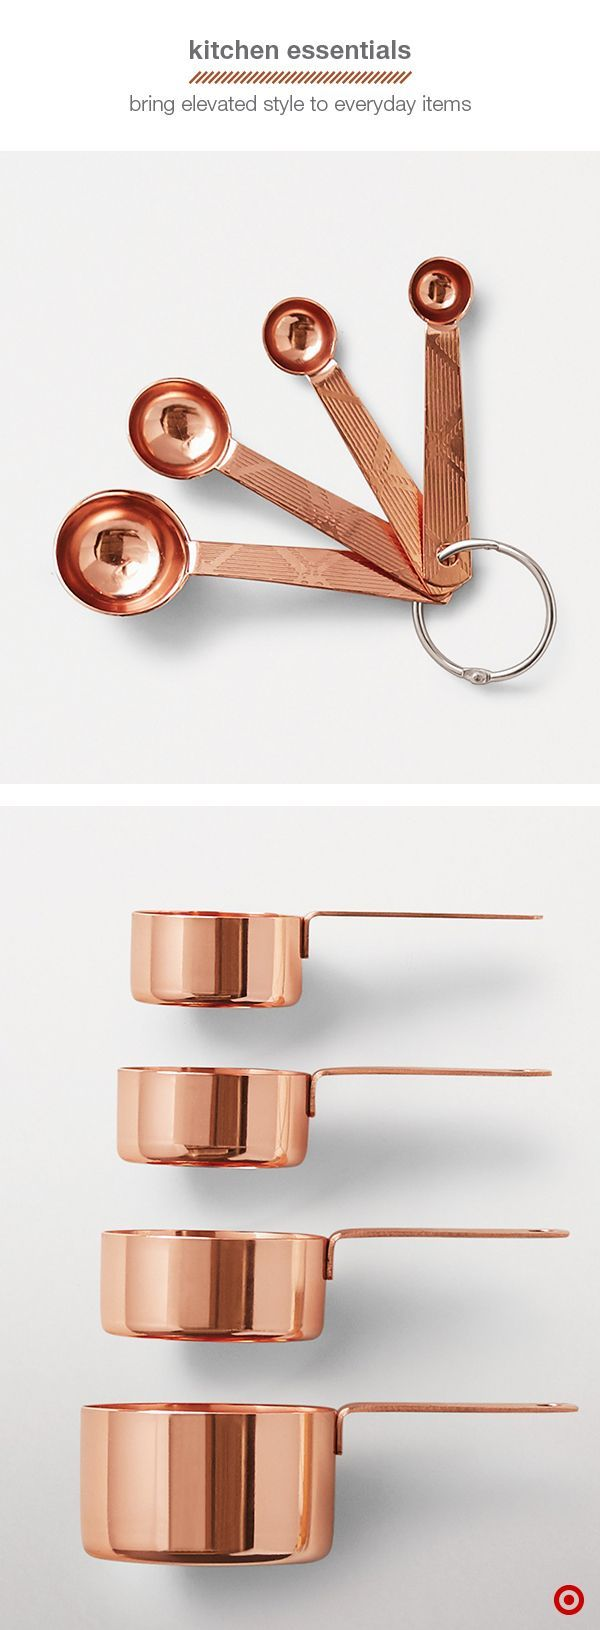 http://rent2own.digimkts.com/ All I needed was a little time and now I can have it all how to buy a home Take your kitchen game up a notch for fall with copper baking tools. Not only does this rich metal add warmth to your home, but these metallic measuring cups and spoons are absolutely stunning. This season, it's copper's time to shine.